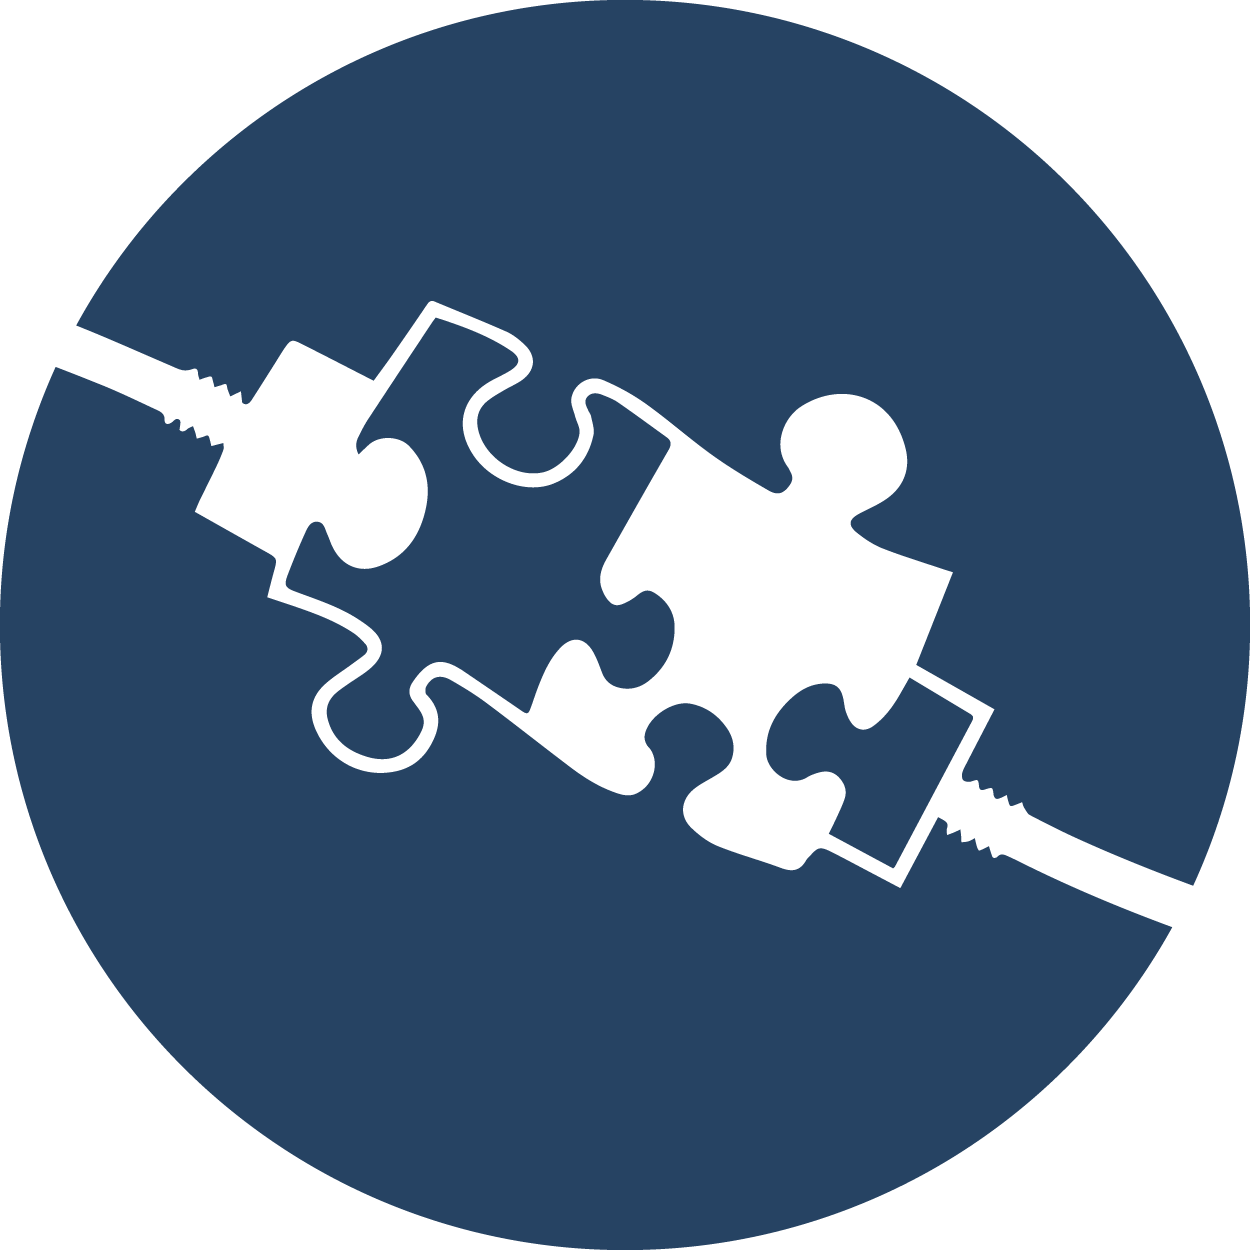 Two connected puzzle pieces